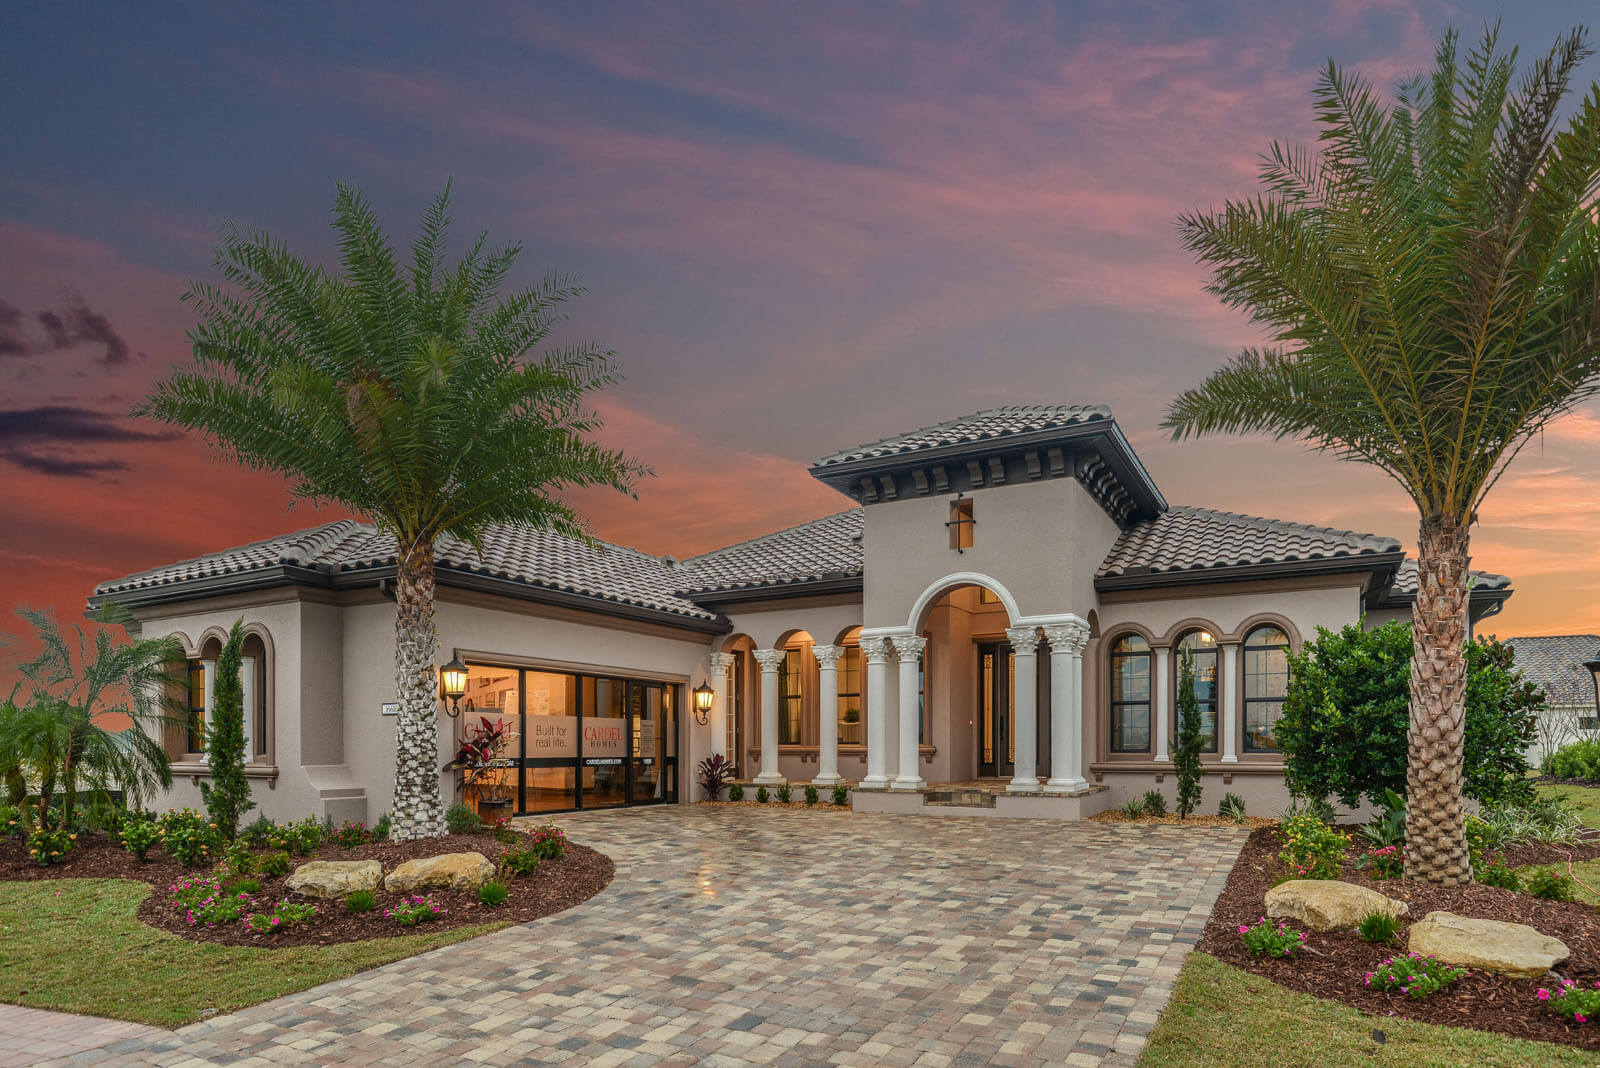 New Tampa  Model Home Toriana in Lakewood Ranch, located at 16613 Berwick Terrace Built By Cardel Homes Tampa